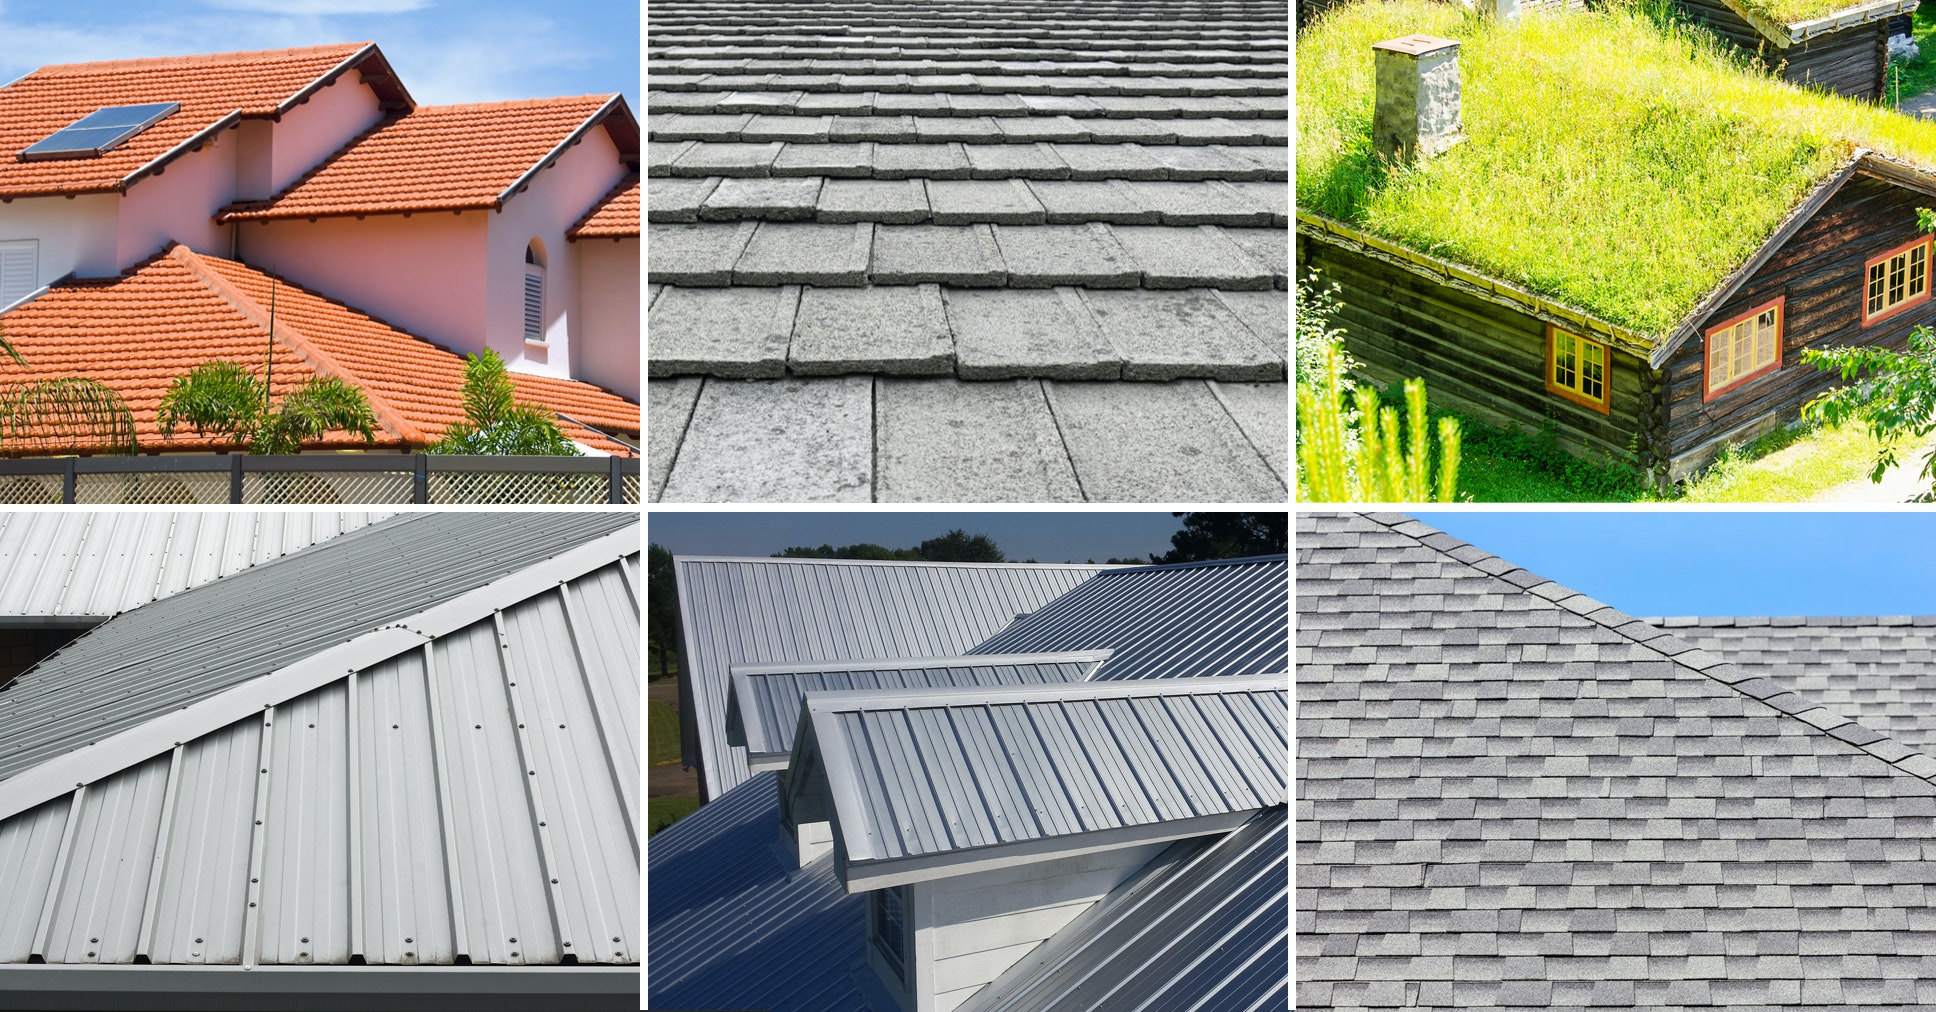 If You Canu0027t Stand The Heat, Get A New Roof: The 5 Best Roofing Materials  For Hot Climates